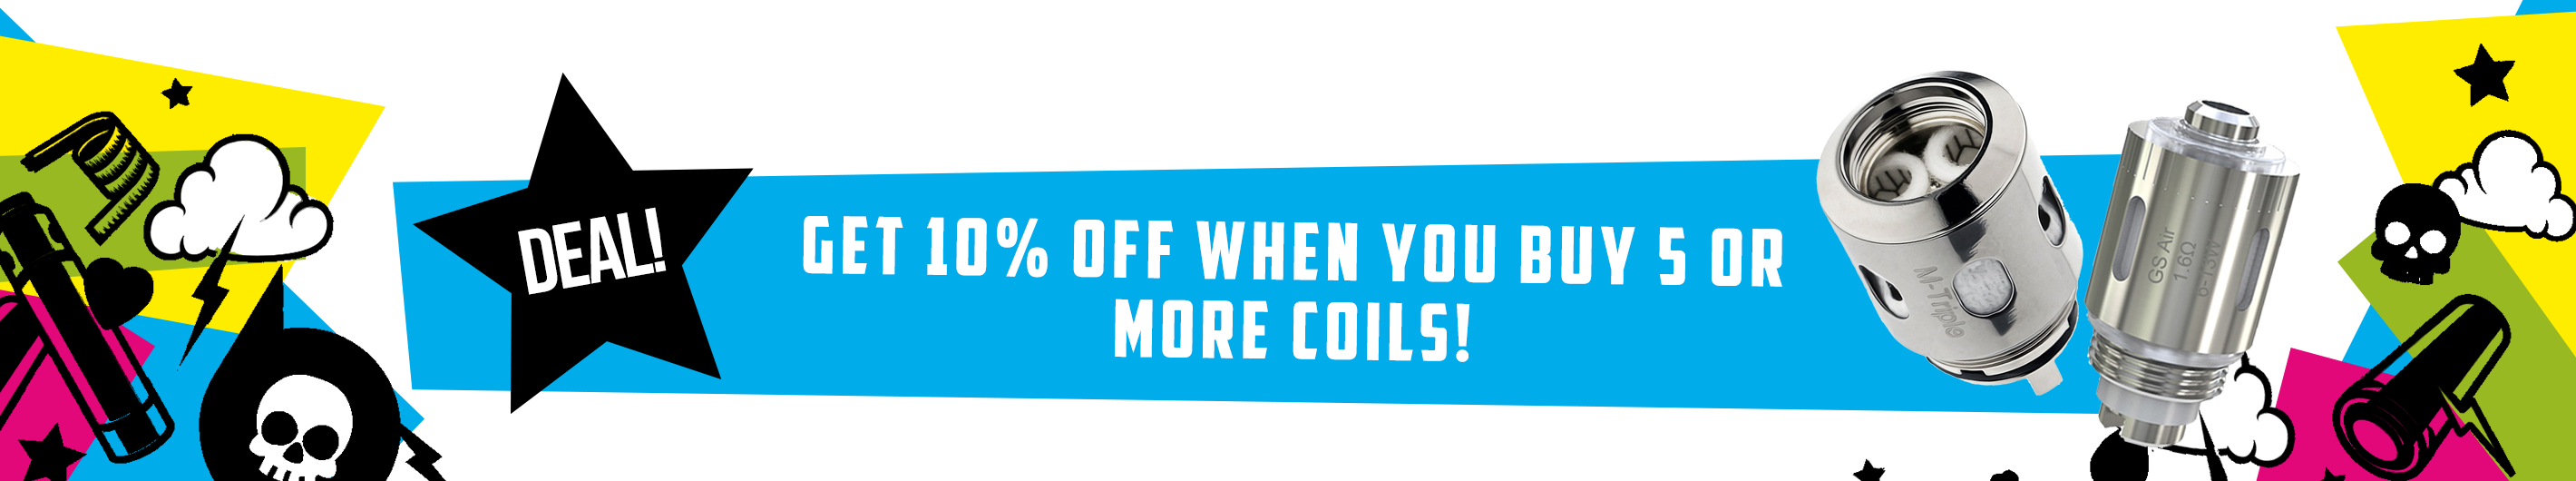 Coils - 10% off when you buy 5